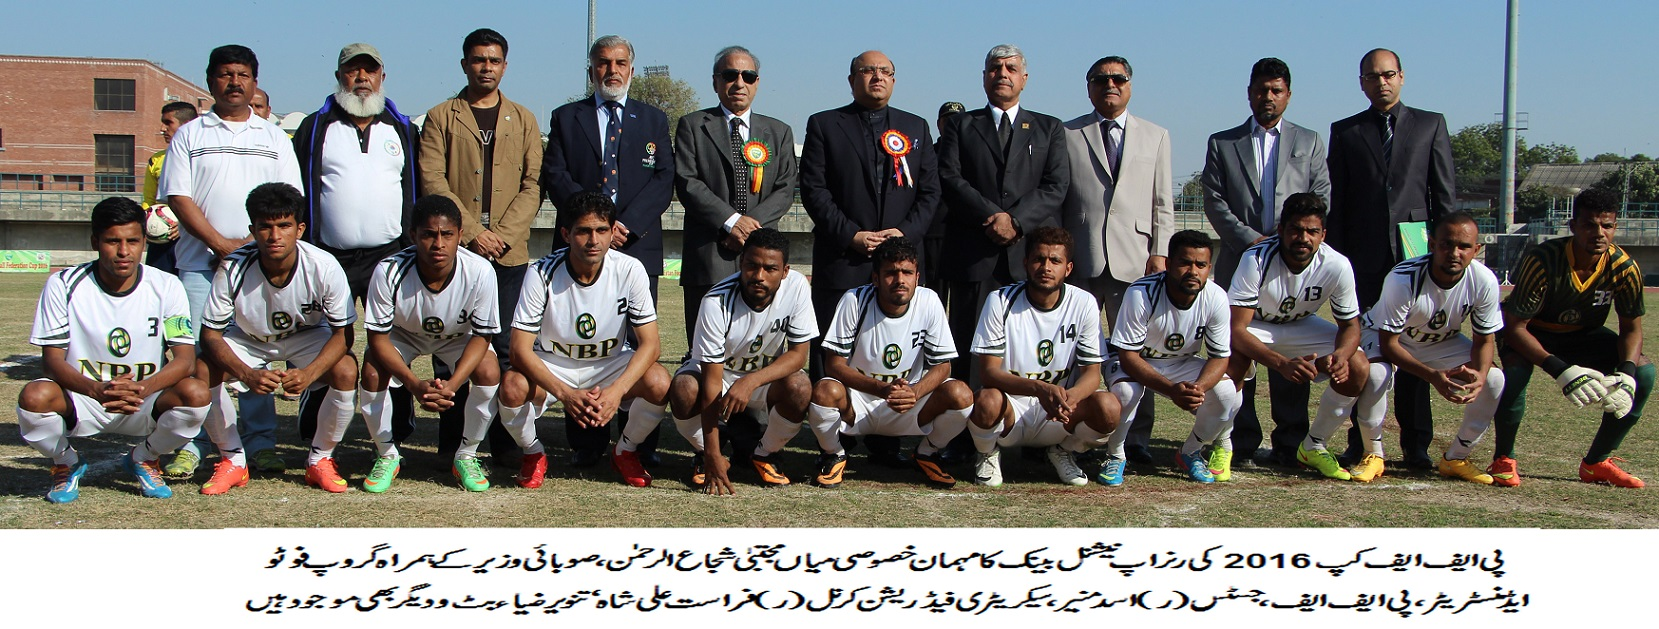 NBP in PFF Cup 2016 final